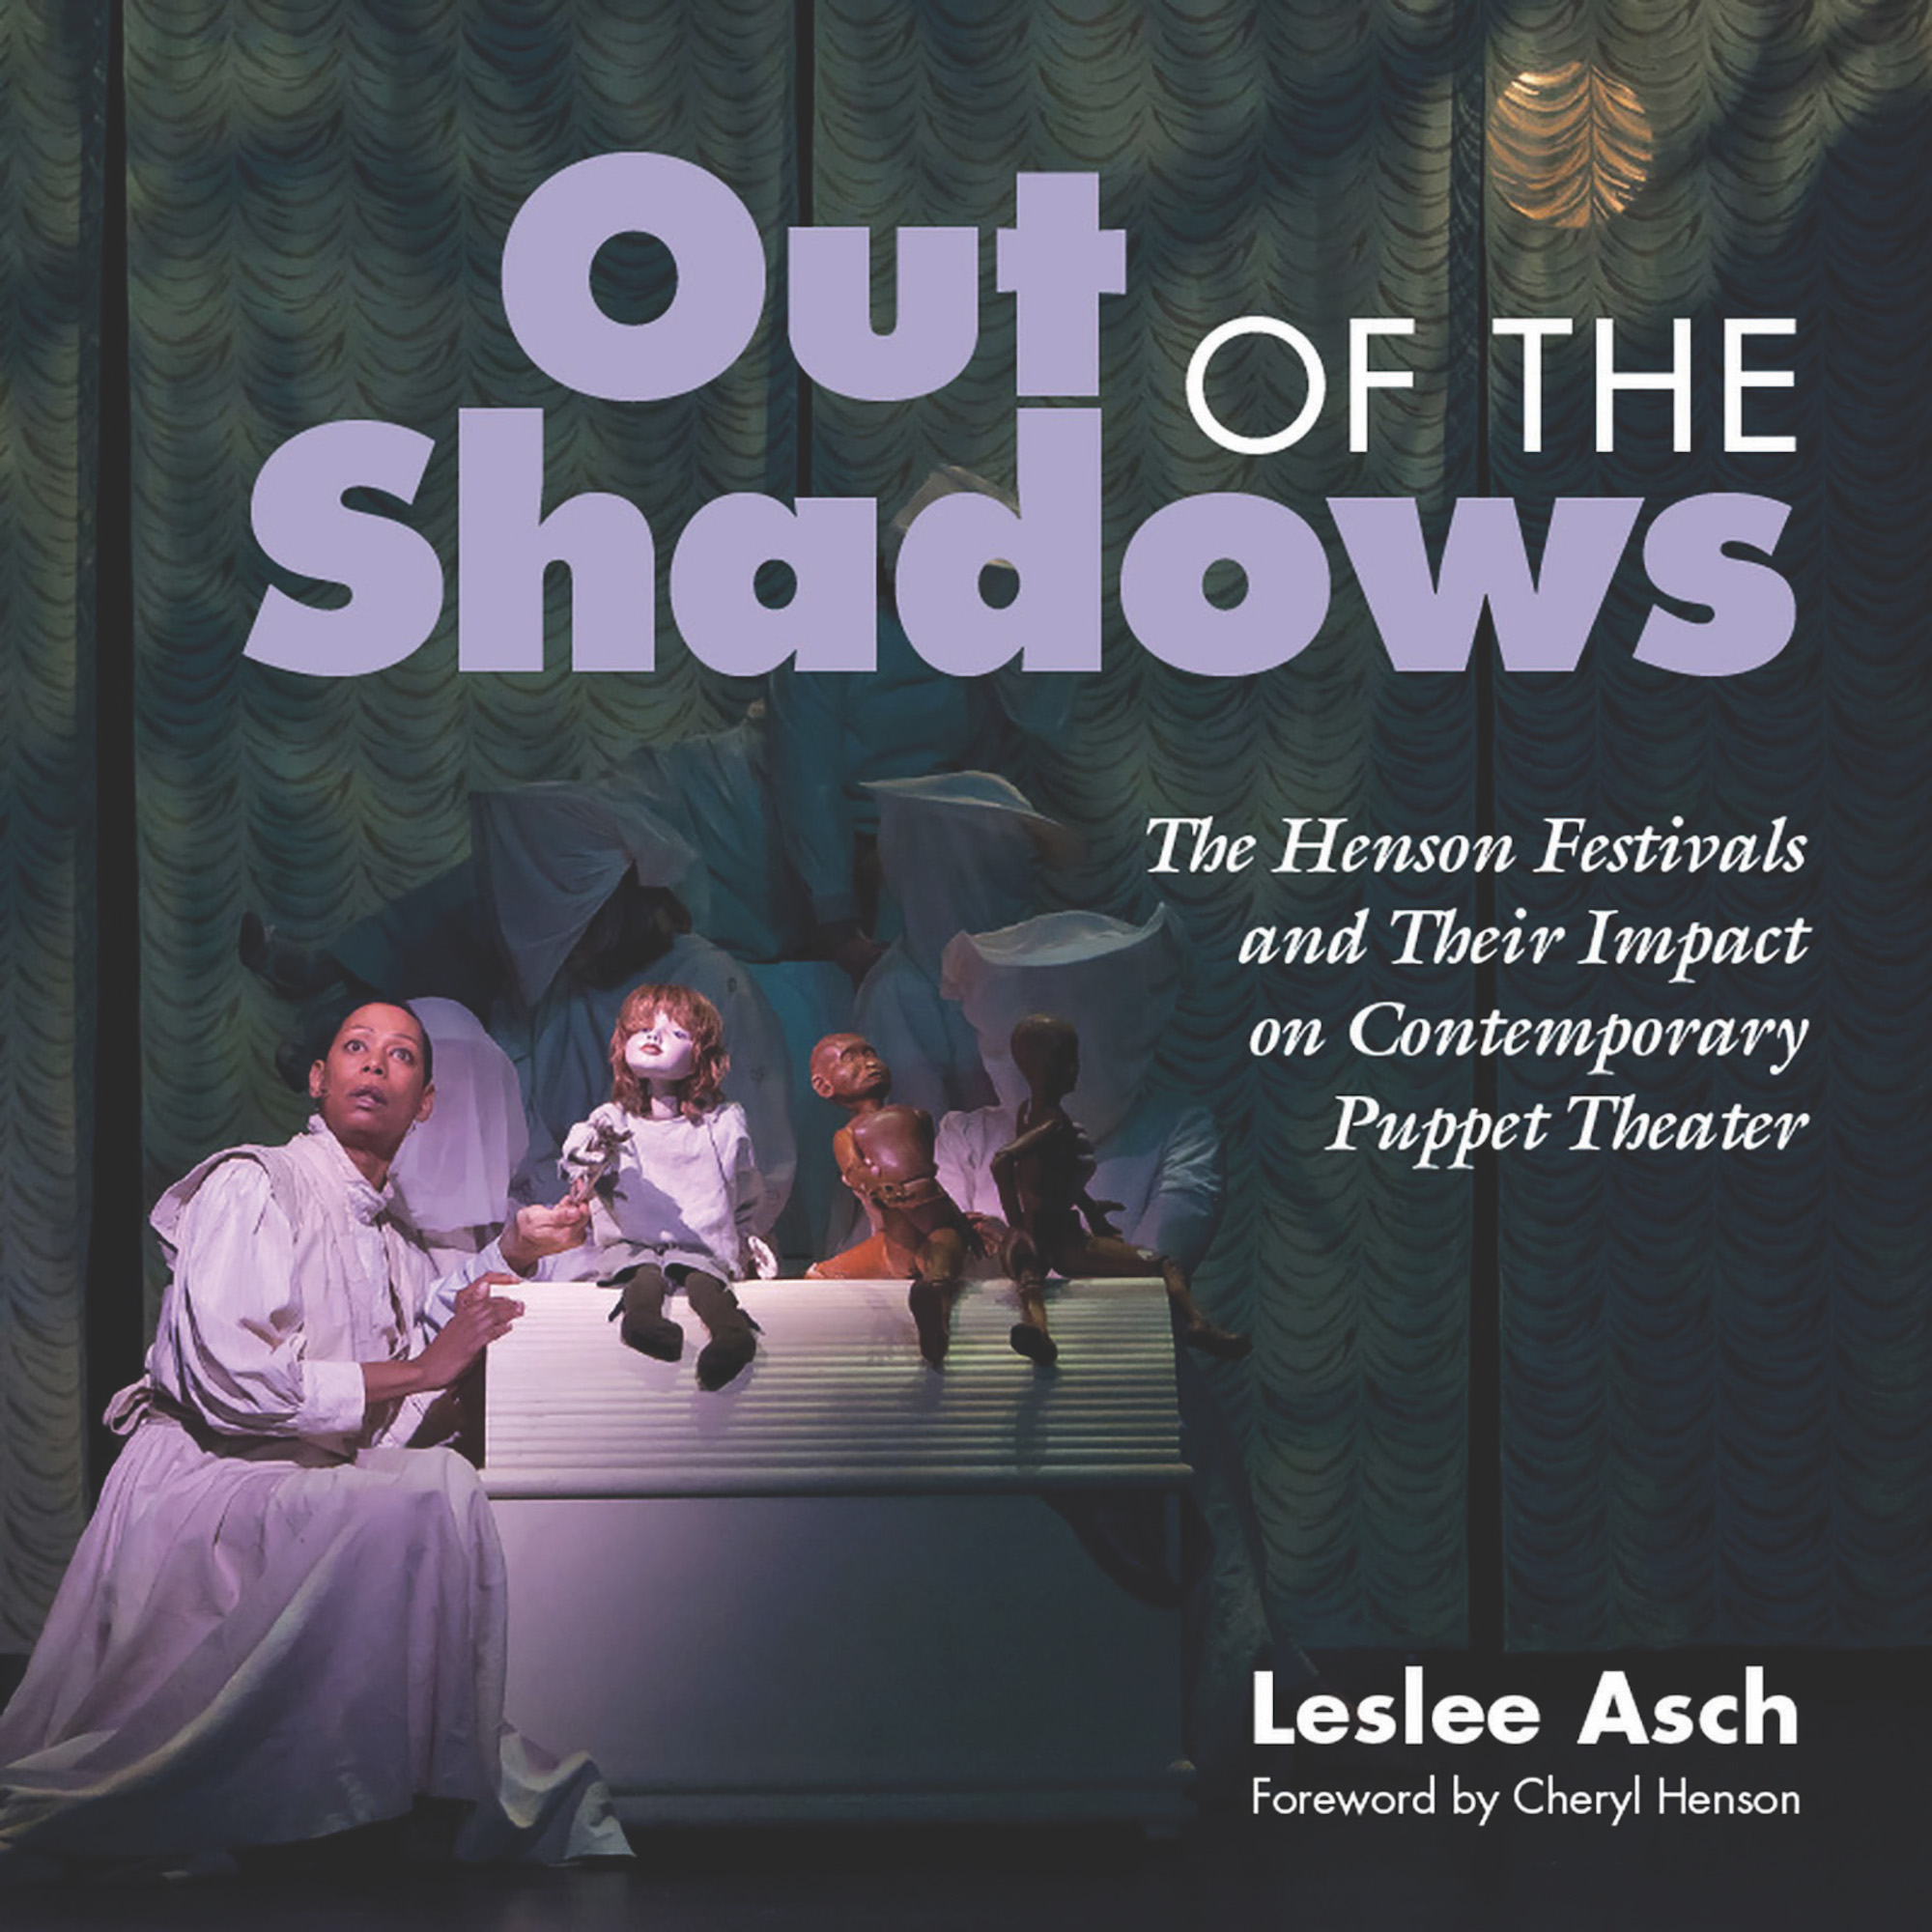 """A Black performer is on stage next to a white set piece with three puppets. The text reads """"Out of the Shadows,"""" """"The Henson Festivals and Their Impact on Contemporary Puppet Theater"""" in italics, and """"Leslie Asch, Foreward by Cheryl Henson."""""""